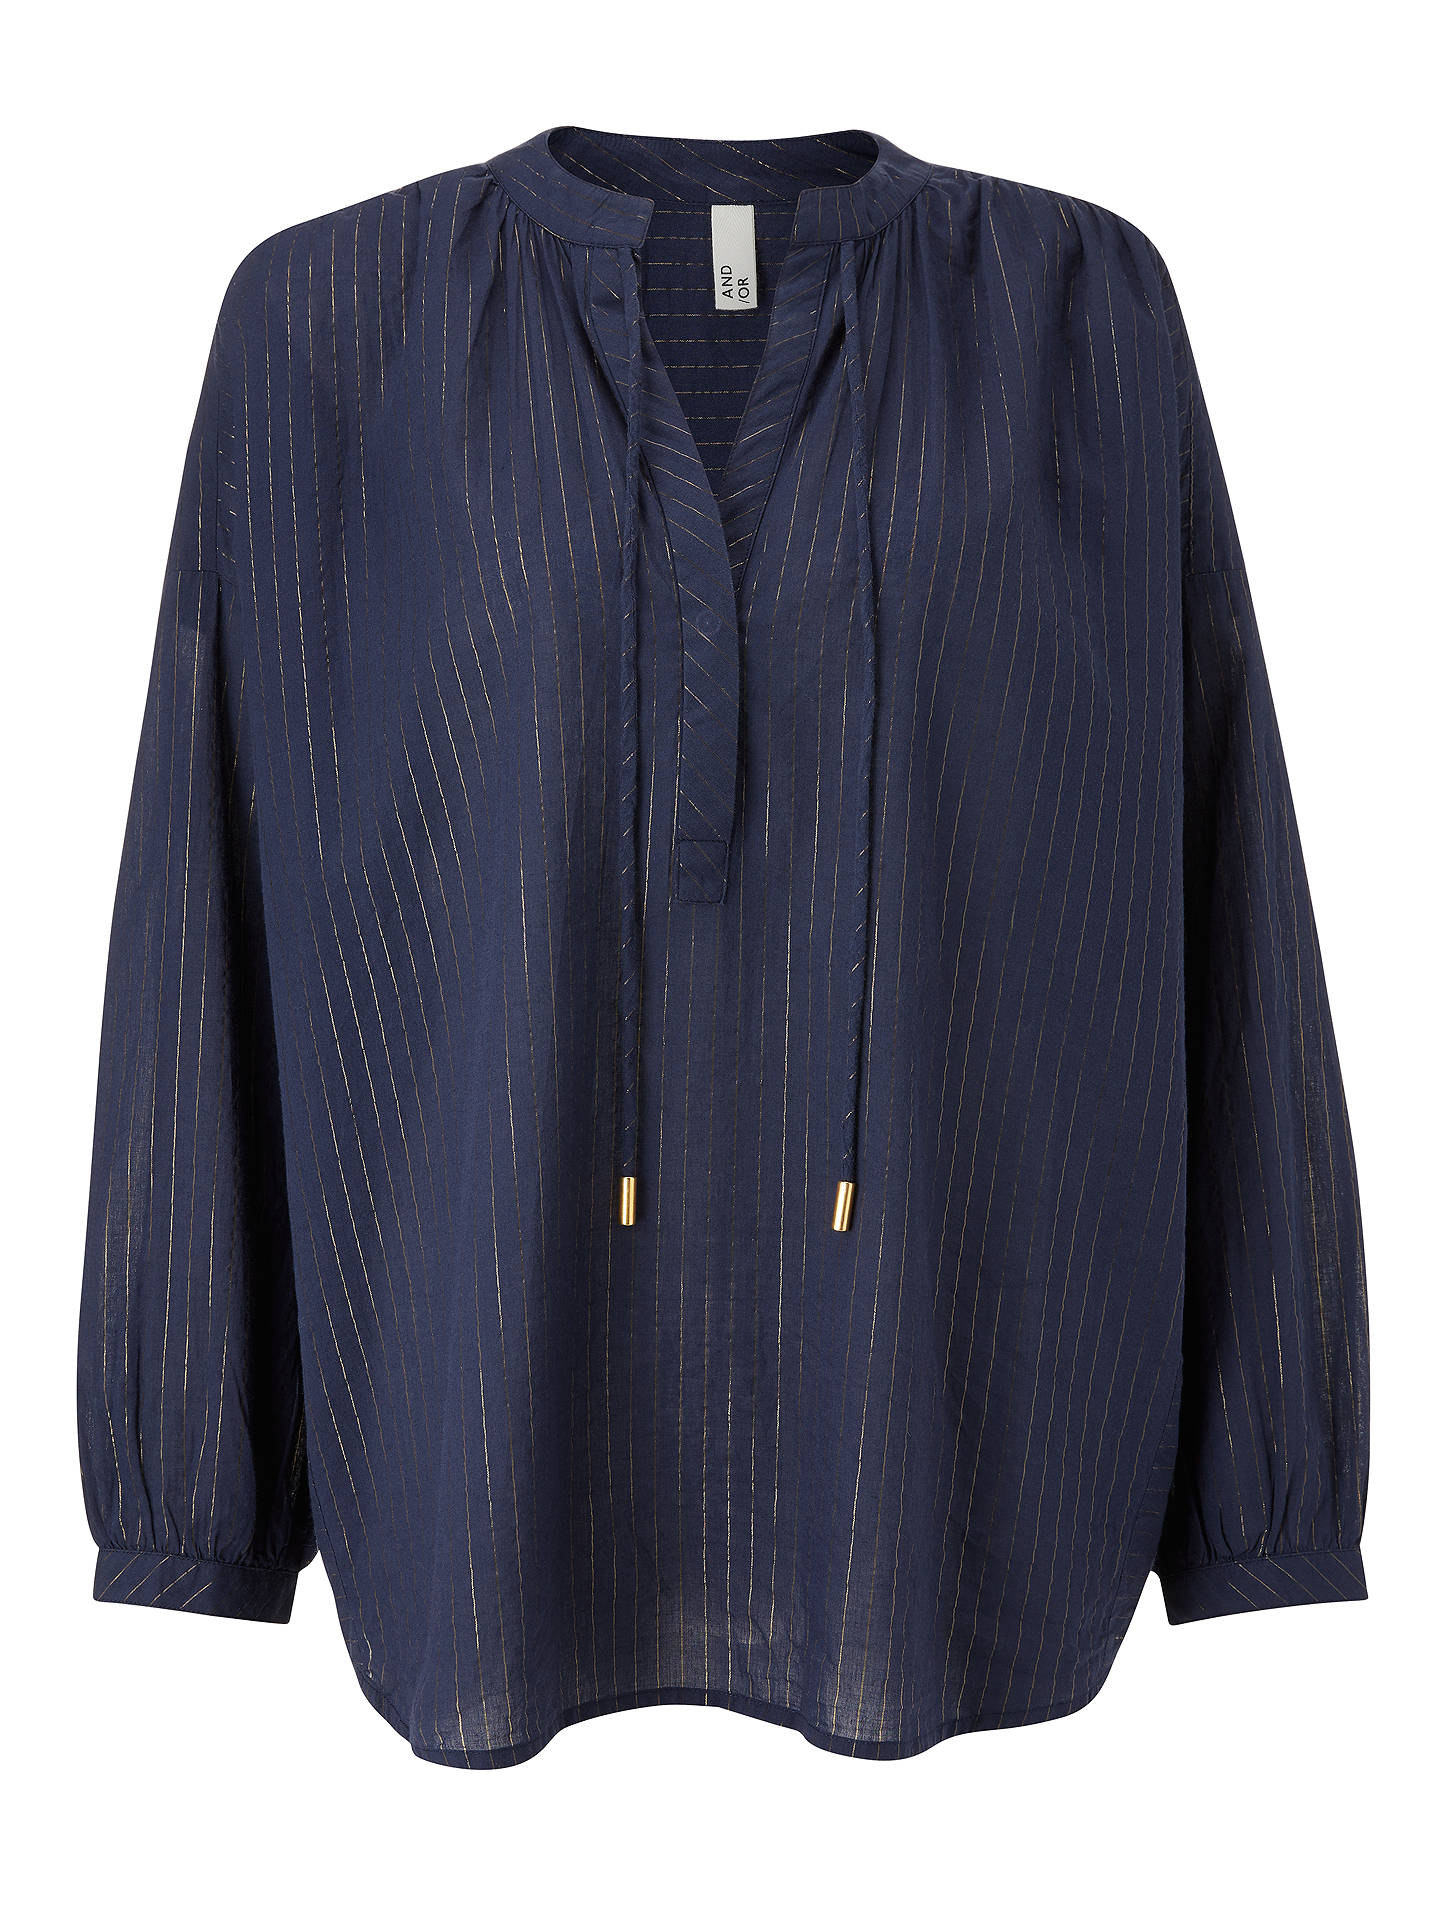 Buy AND/OR Pipa Lurex Stripe Top, Blue/Gold, S Online at johnlewis.com